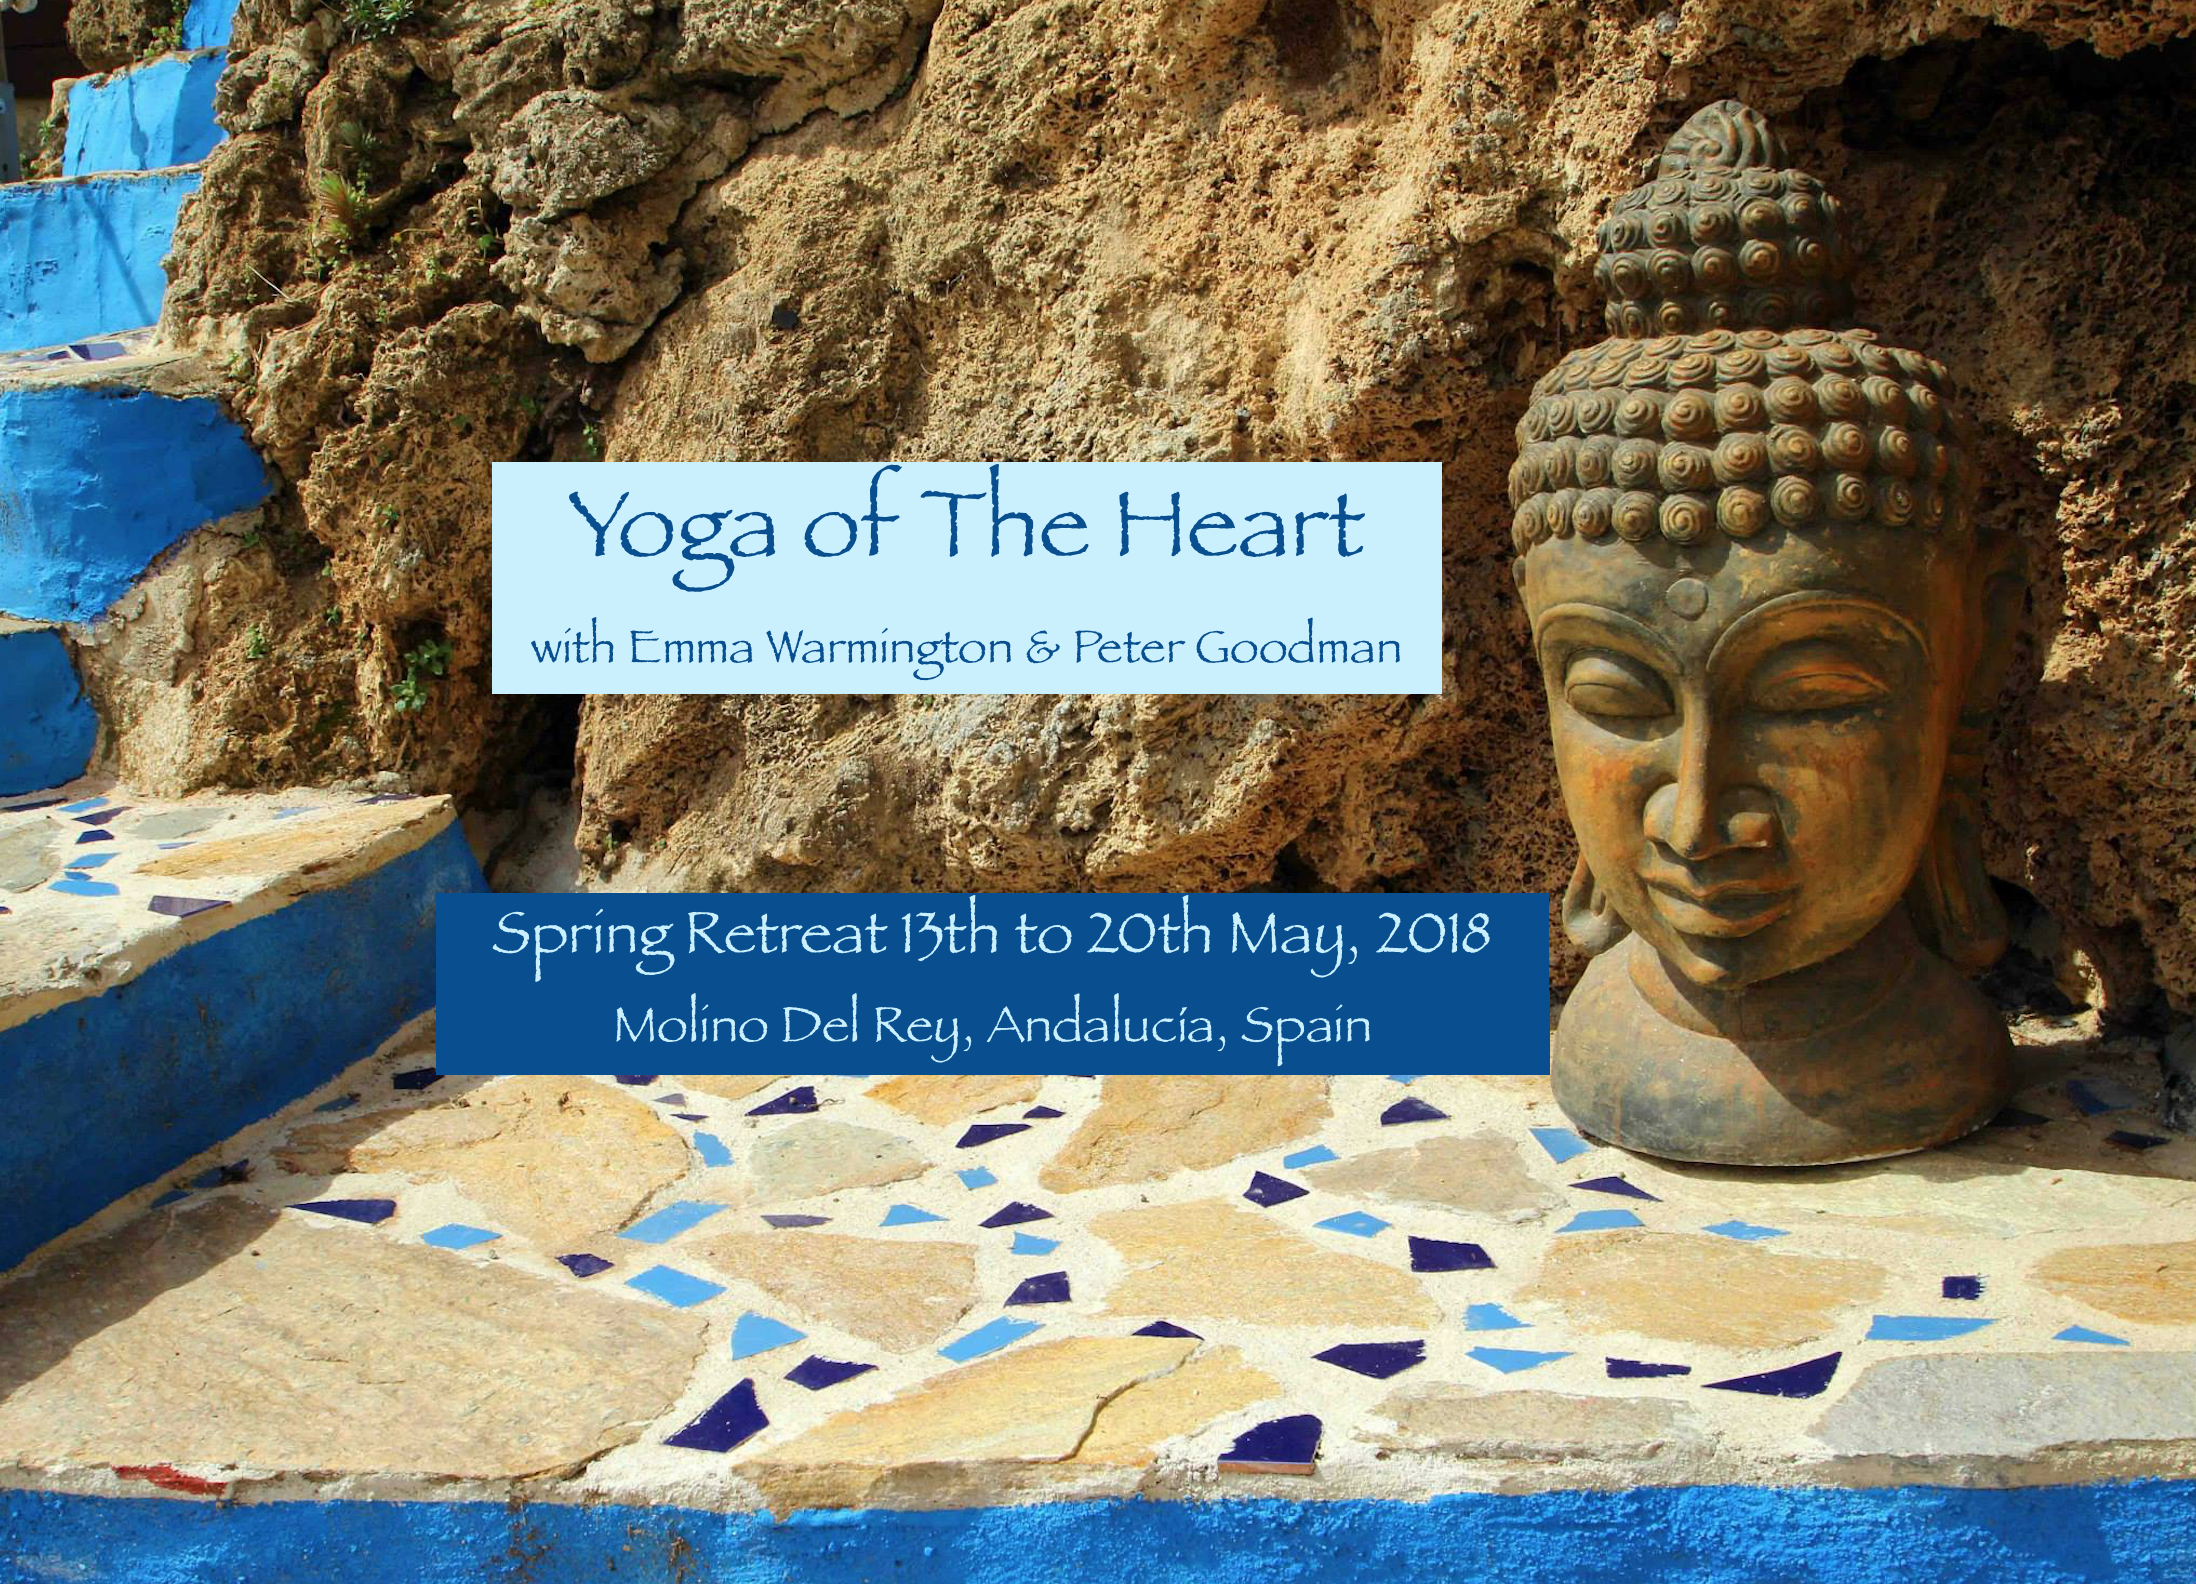 'Yoga of The Heart' Spring Retreat with Emma Warmington & Peter Goodman